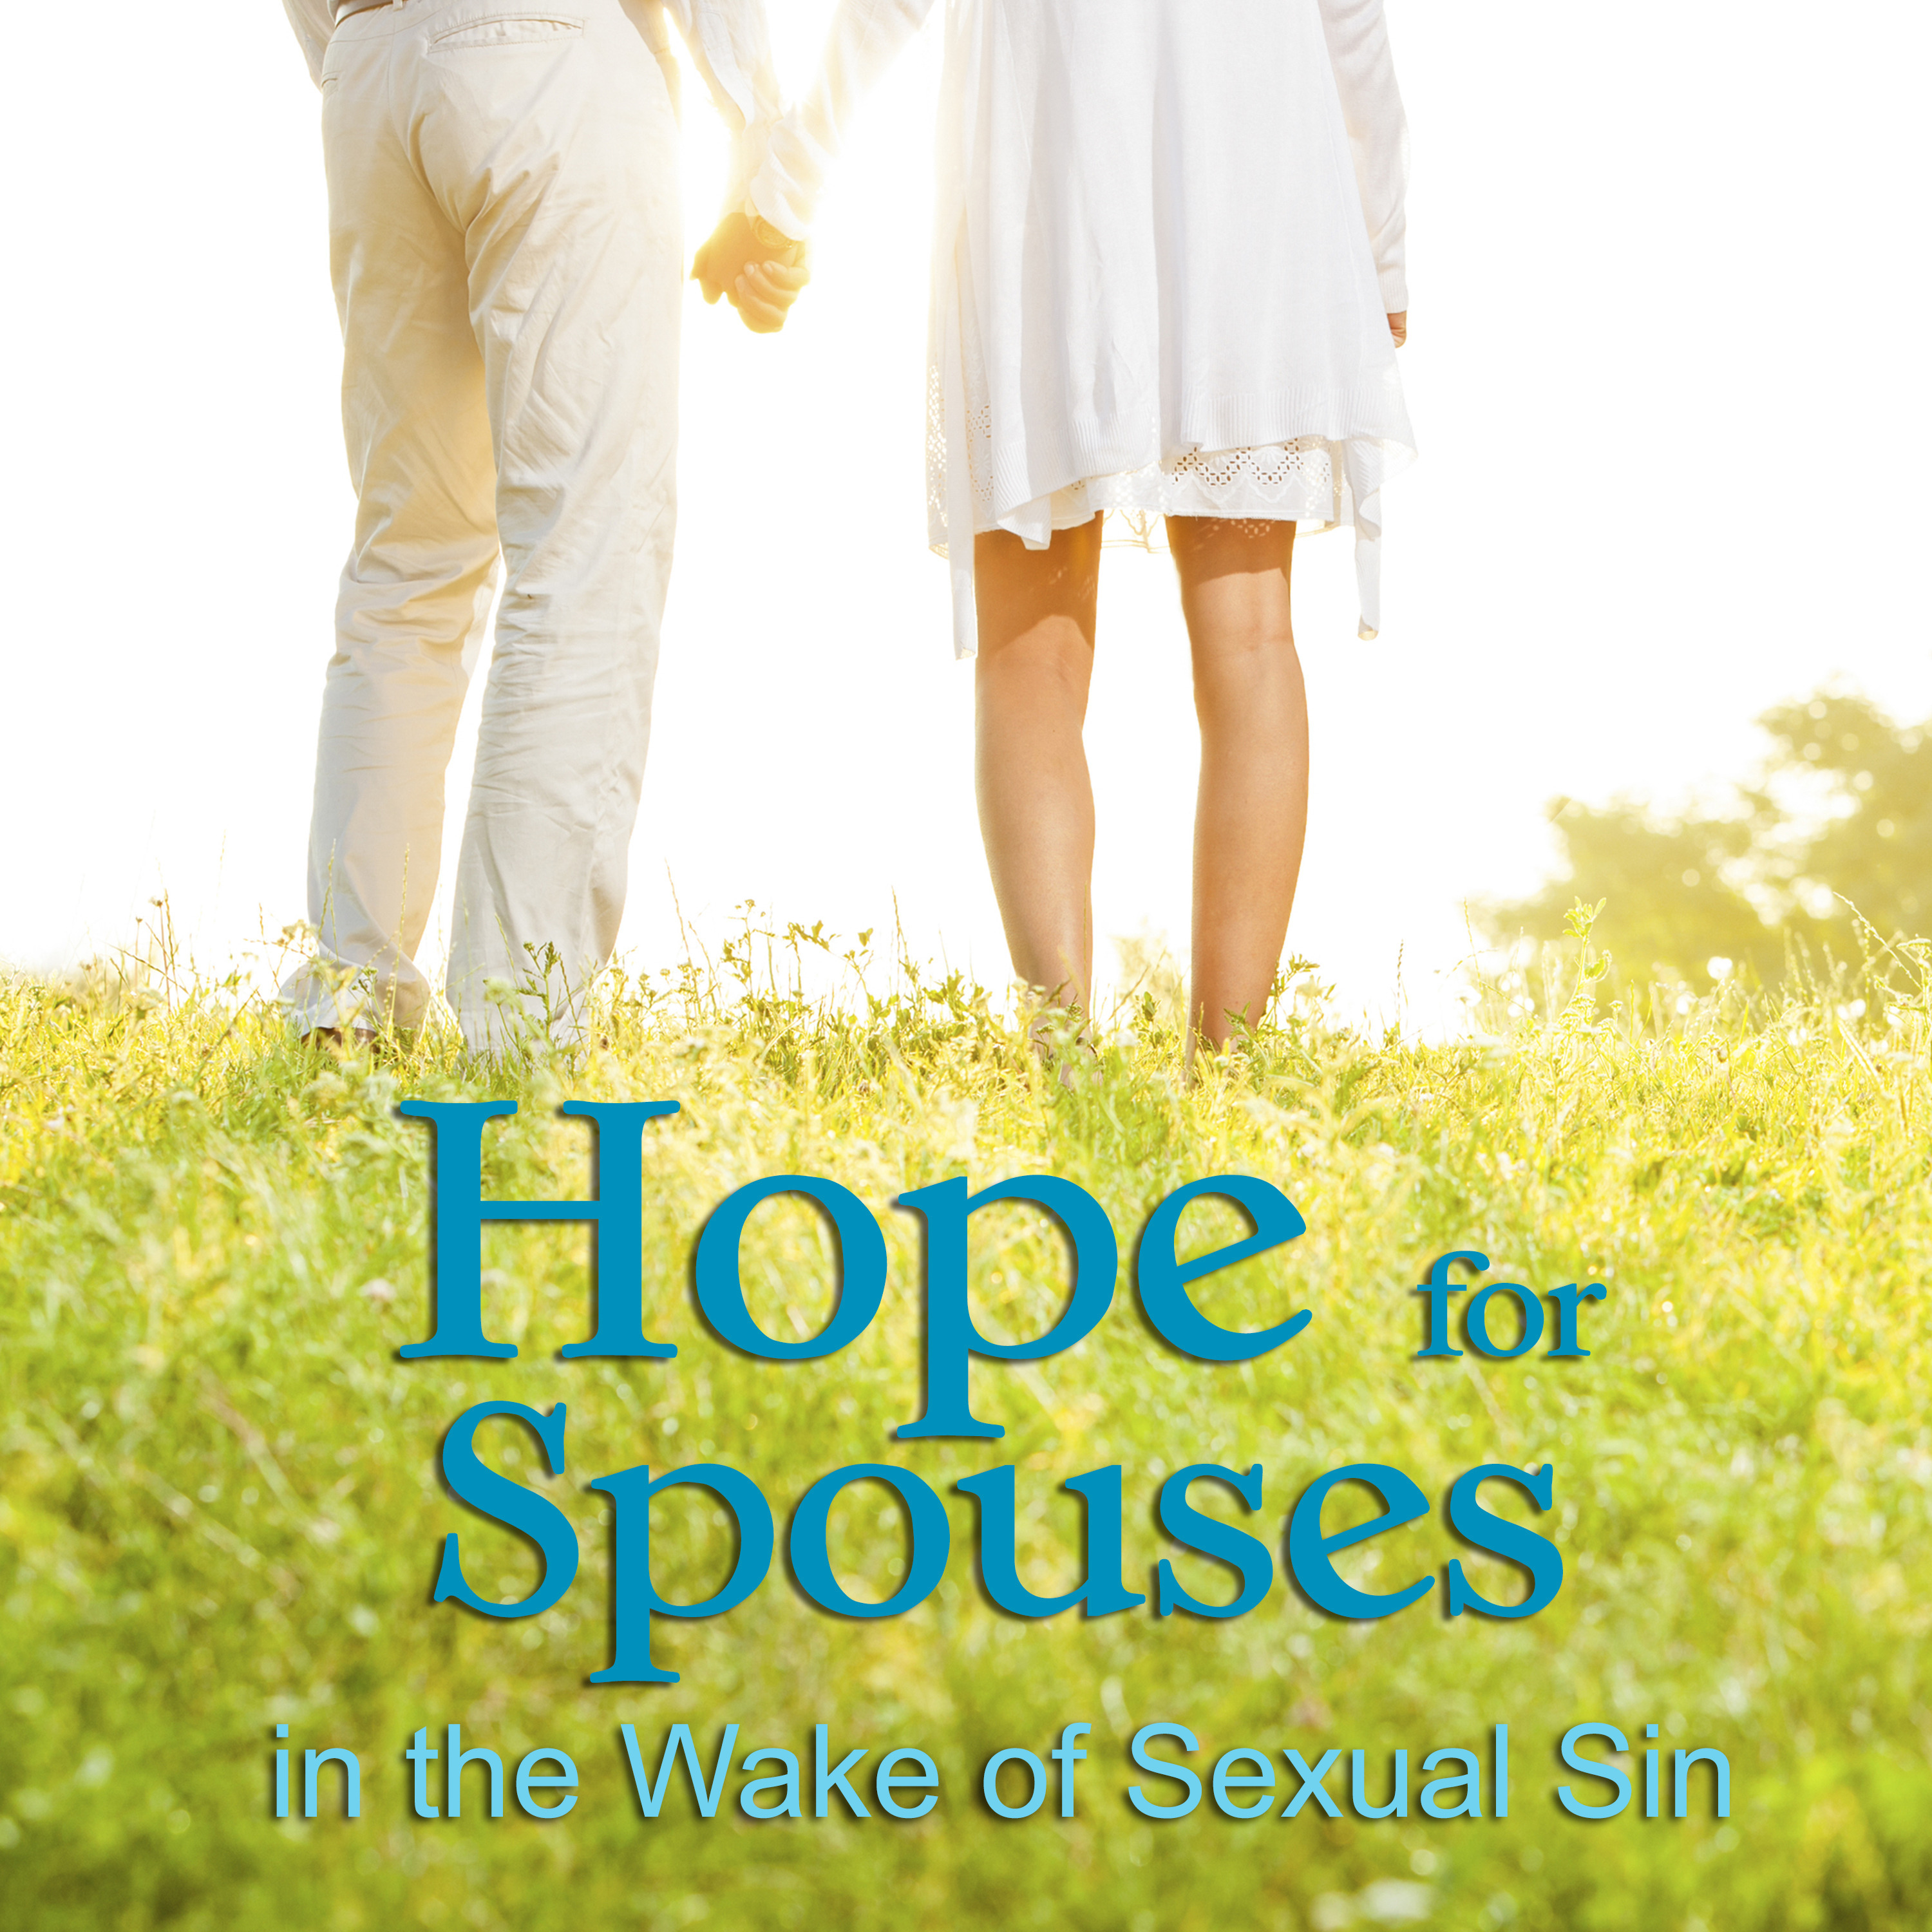 #34: How Long Should You Wait for an Addicted Spouse to Change?